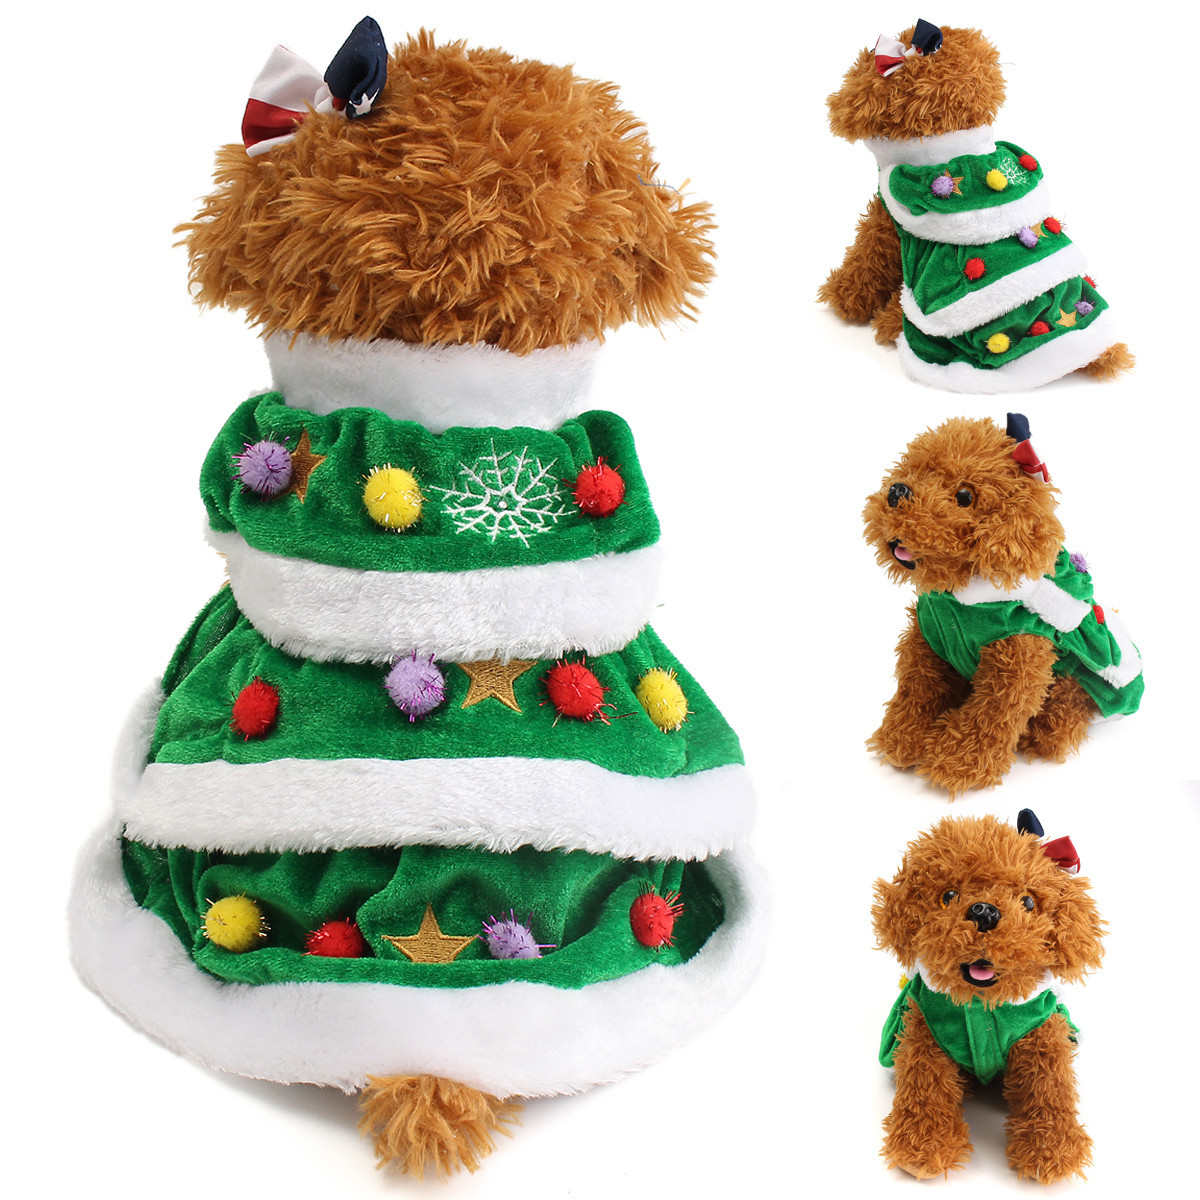 XS/S/M/L/XL/XXL/XXXL Christmas Festival Tree Pet Dog Cat Coat Puppy Warm Christmas Tree Dogs Clothes Costumes Apparel